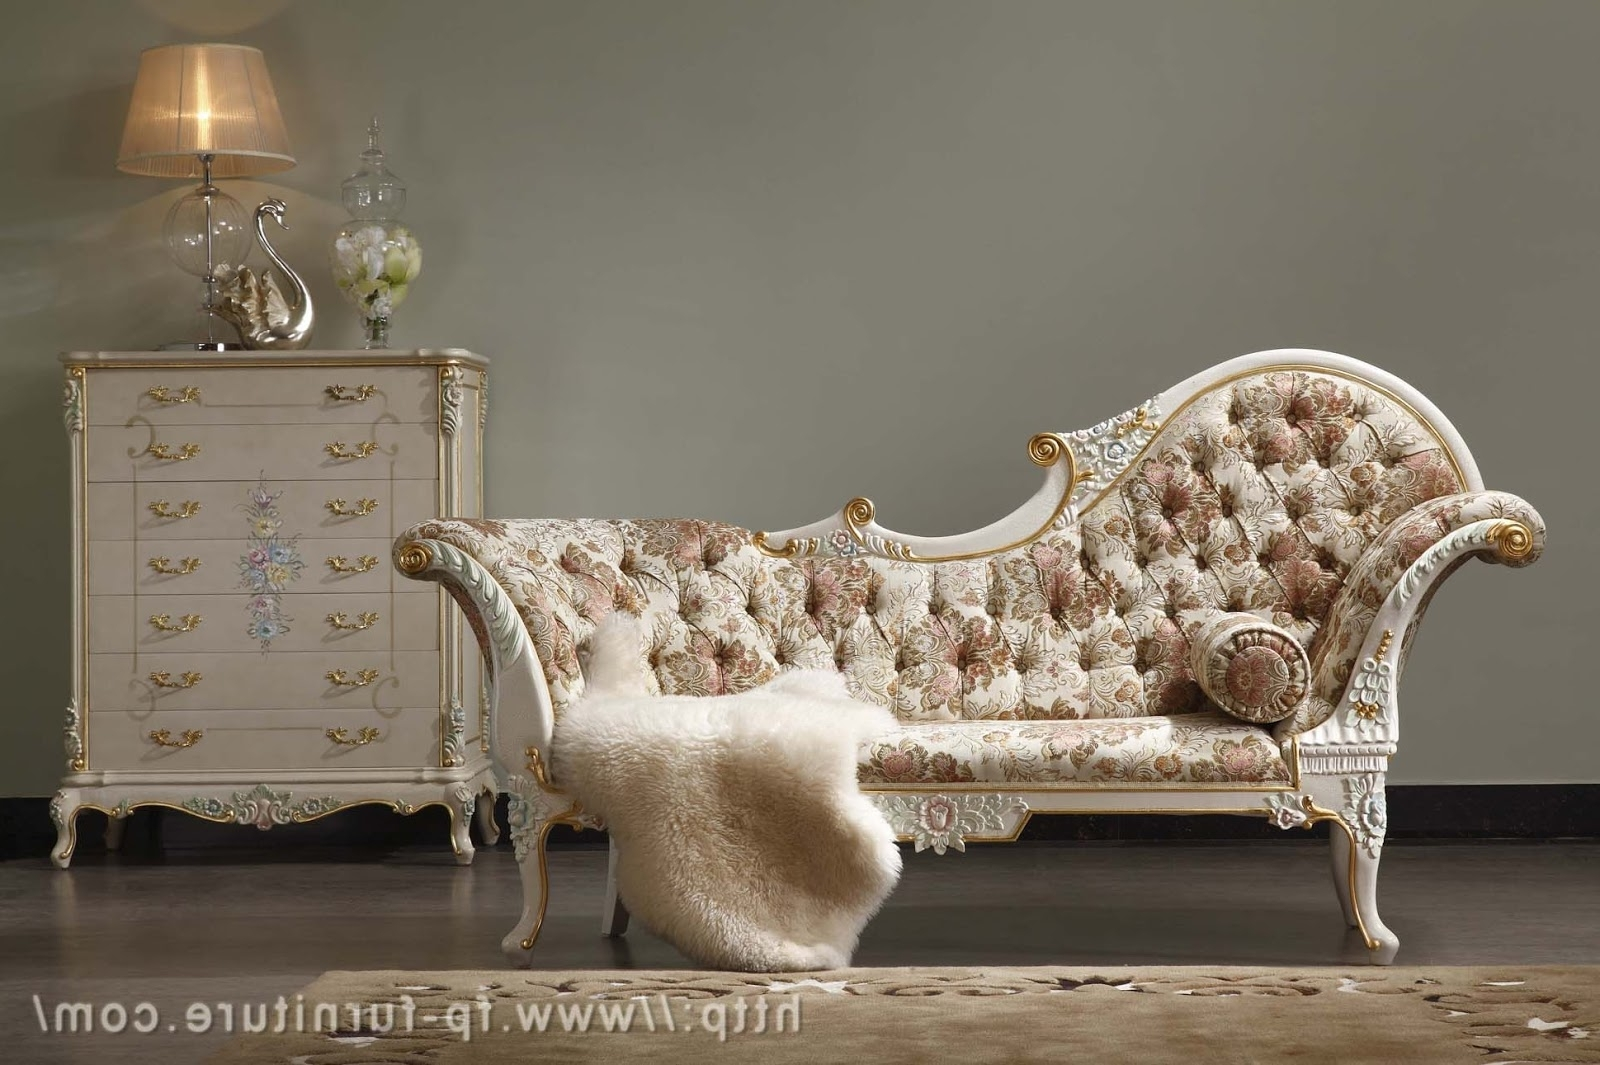 Most Recent Filiphs Palladio: Italian Classic Hand Carved Royal Furniture With Regard To European Chaise Lounge Chairs (View 9 of 15)